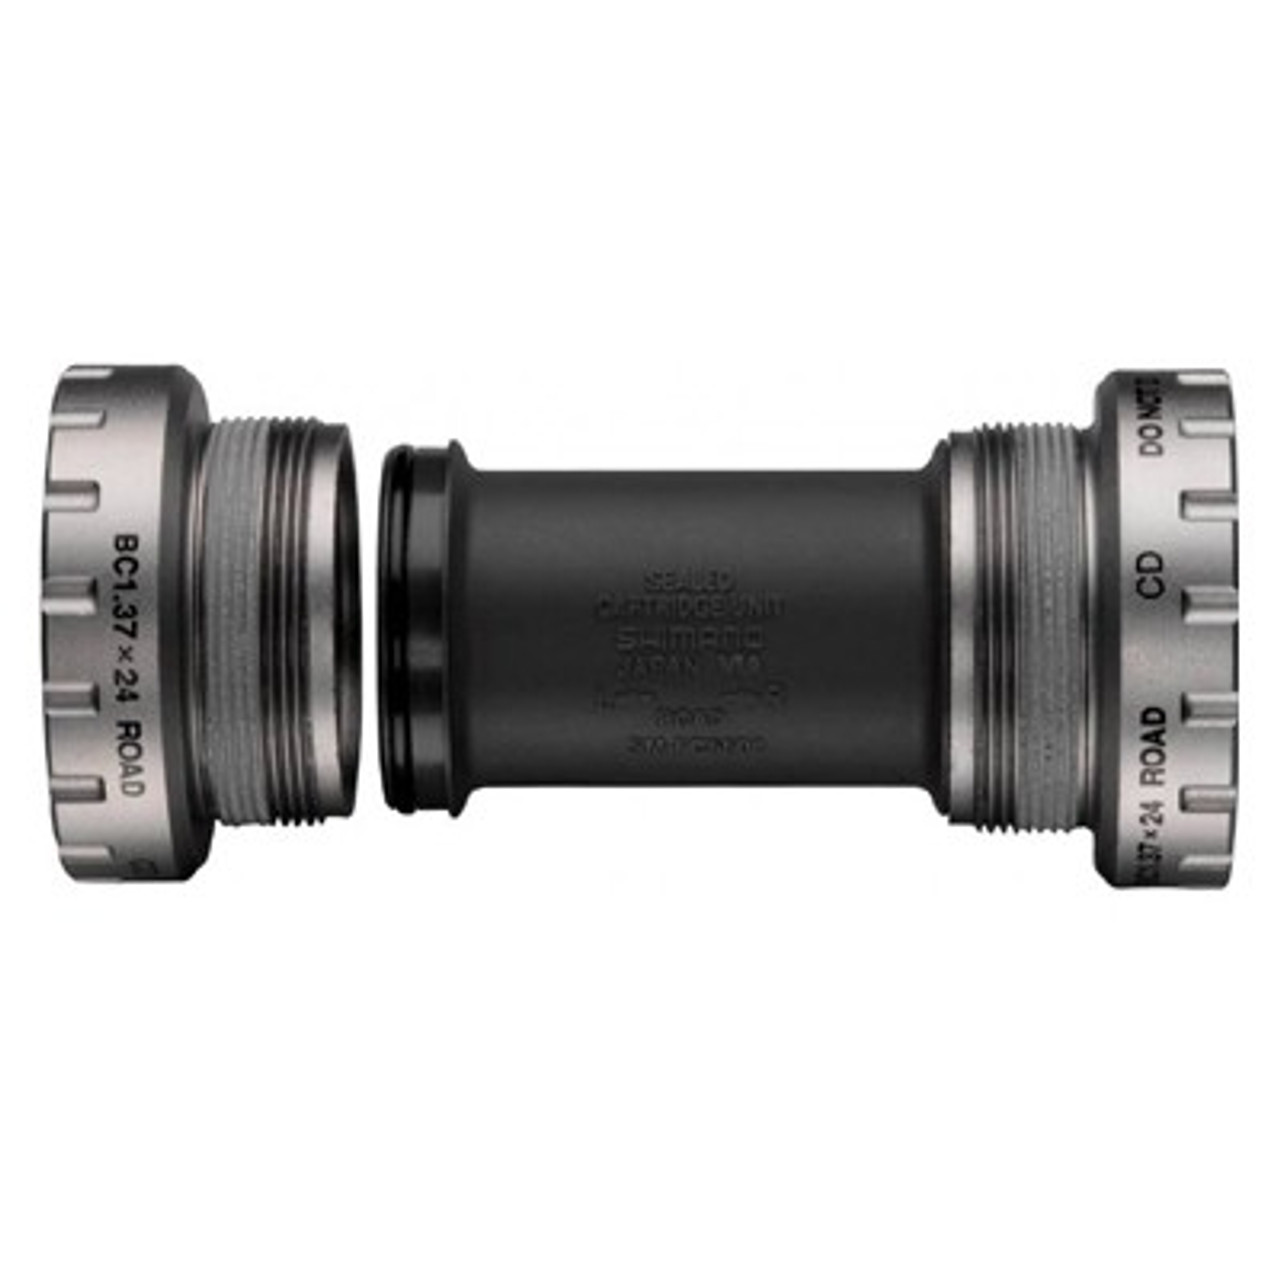 Shimano 4500 BB Cups For Double/Triple/Compact Chainset